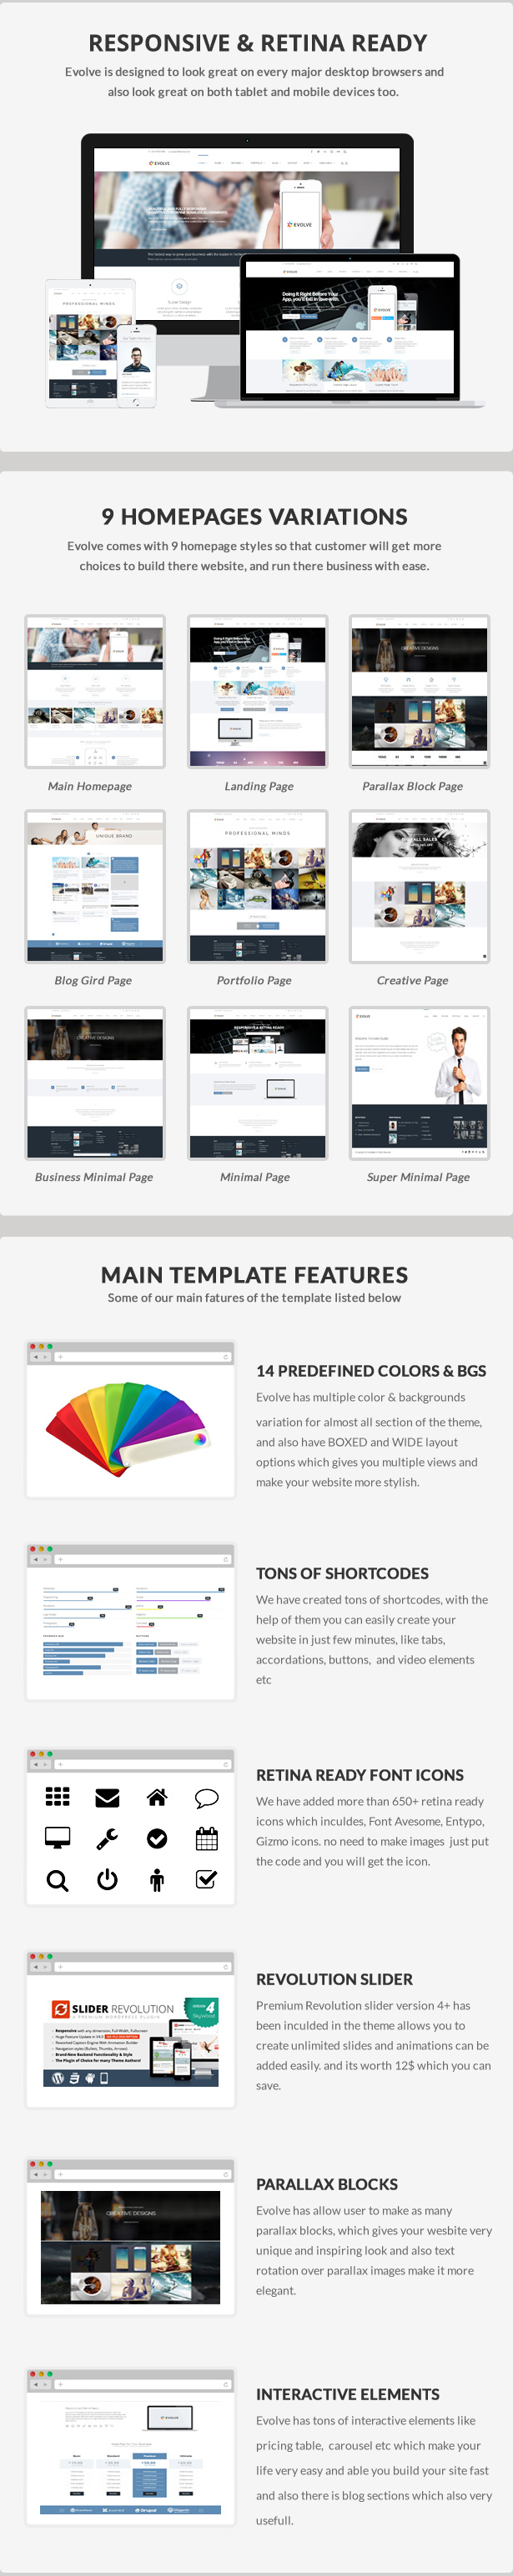 Evolve - Responsive Multi-Purpose Website Template